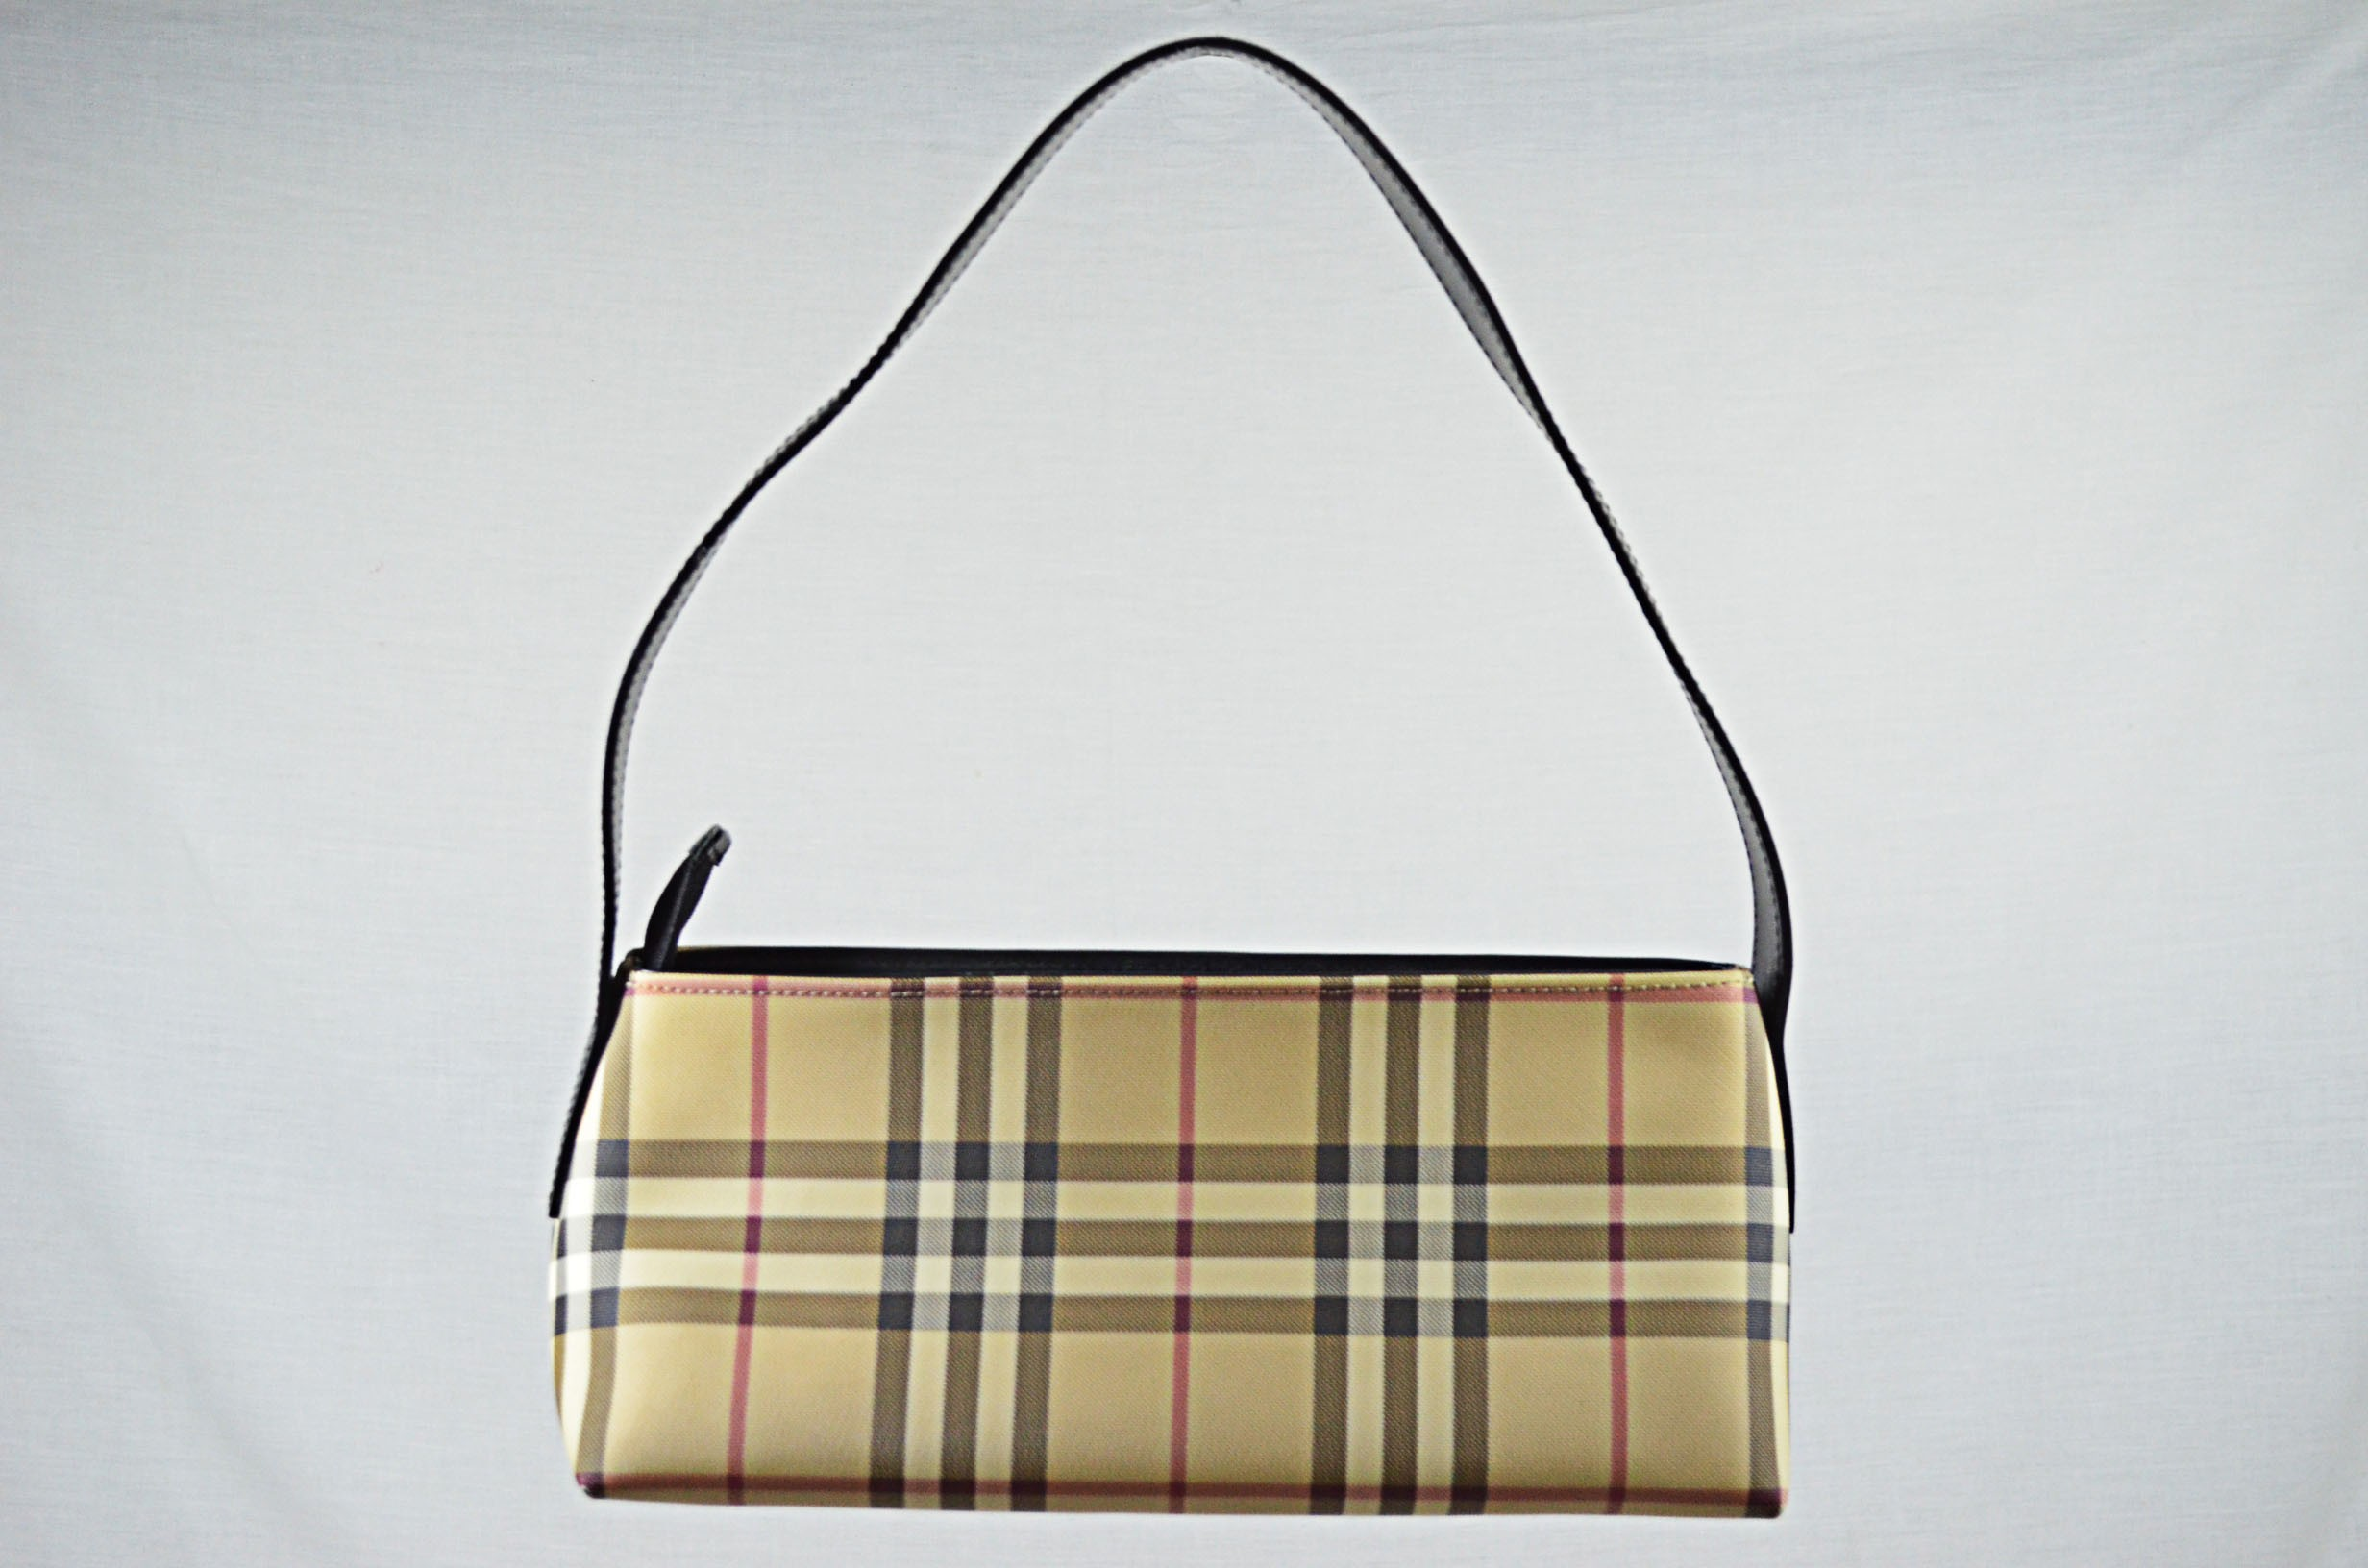 41fdbdbfcfee Burberry Nova Check Small Handbag Buy Online